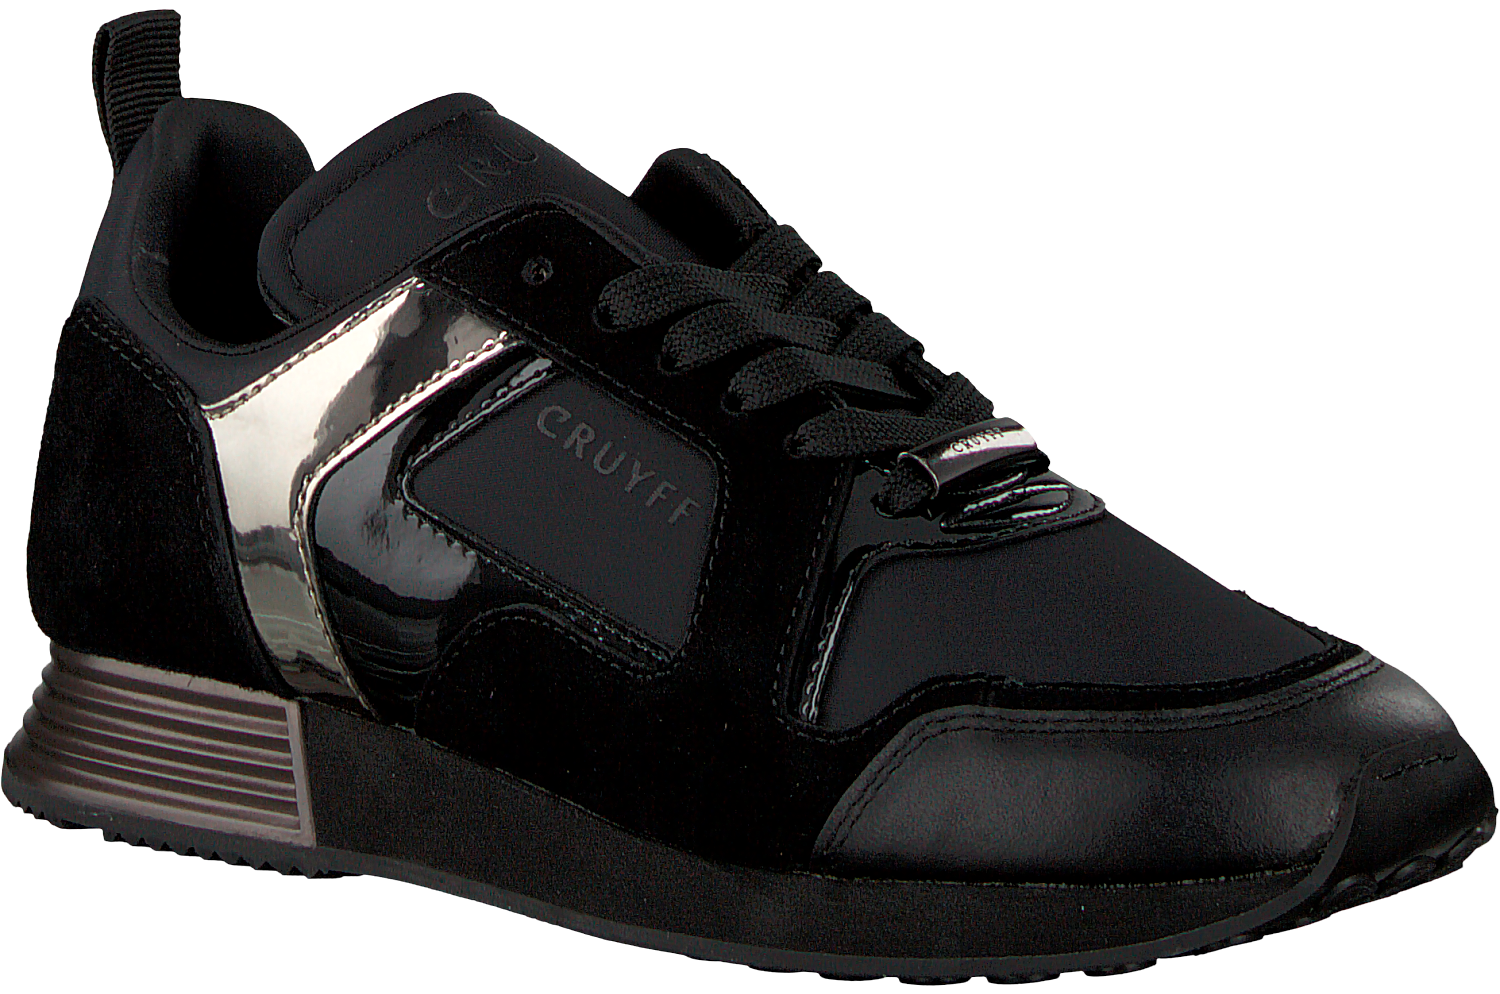 6523a479682 Black CRUYFF CLASSICS Sneakers LUSSO WOMAN - large. Next